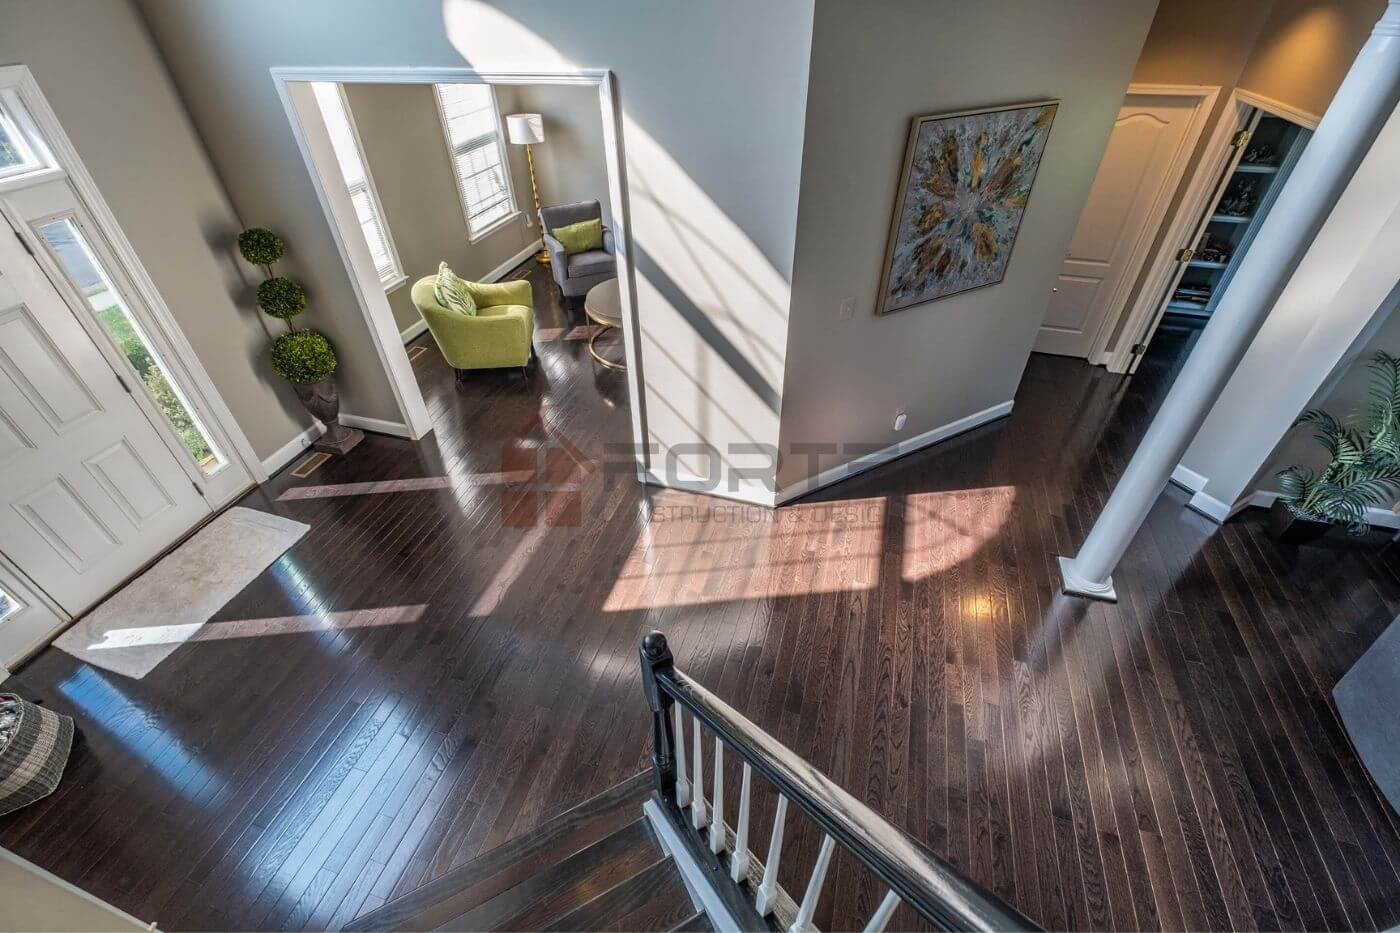 Kitchen and Flooring Remodeling in Ashburn – Myrian, VA